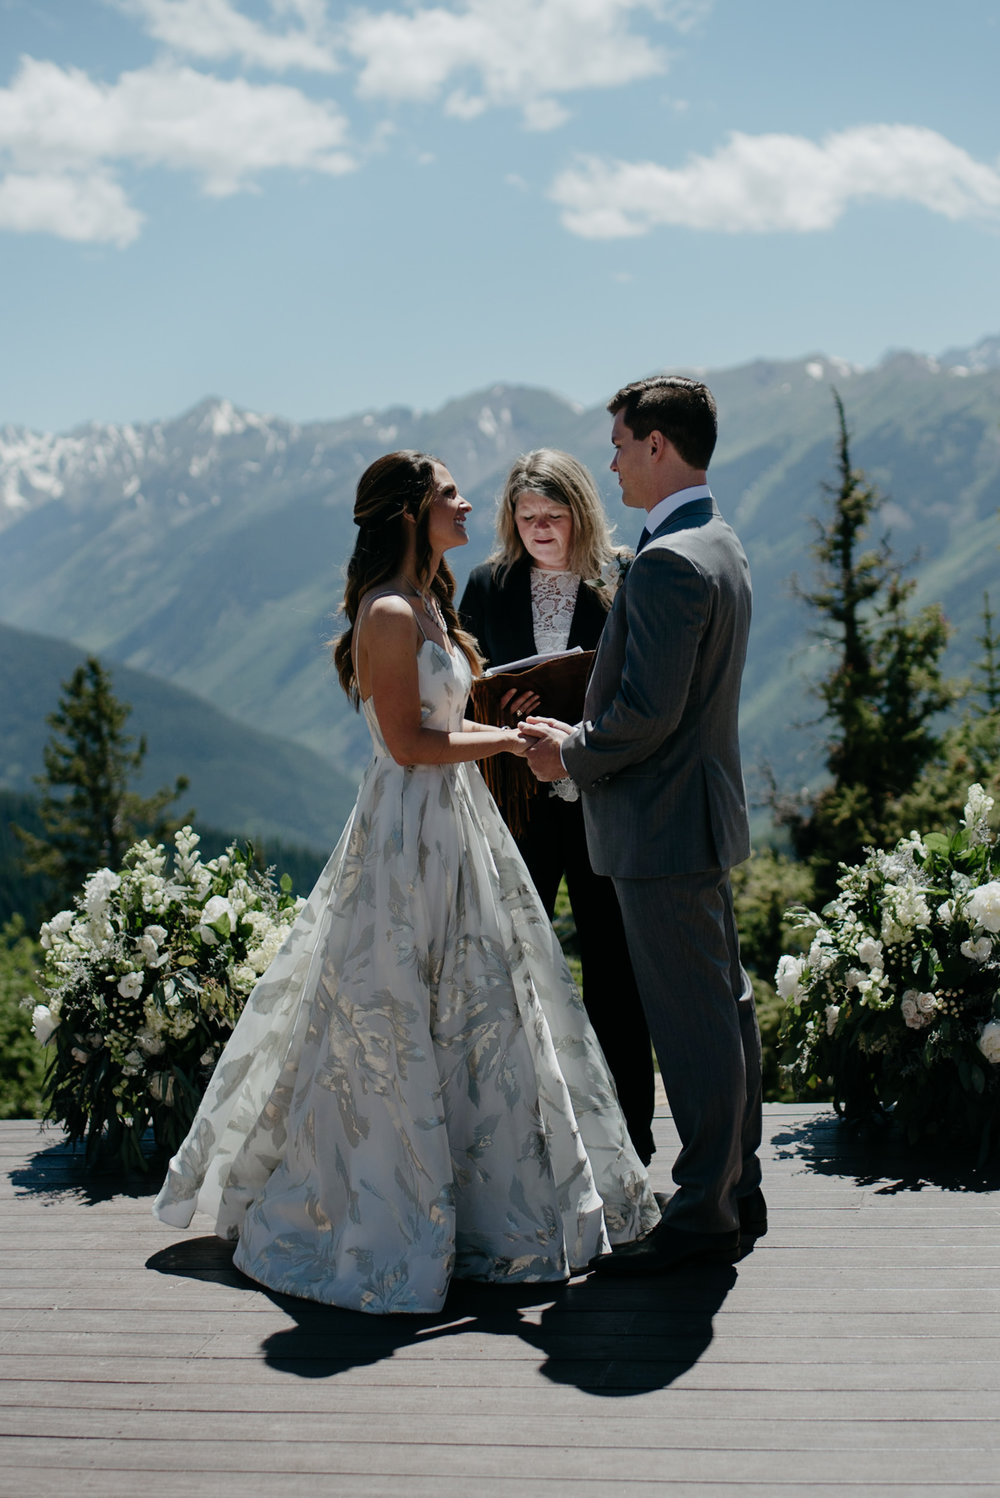 Colorado wedding photographer. Ceremony at The Little Nell.